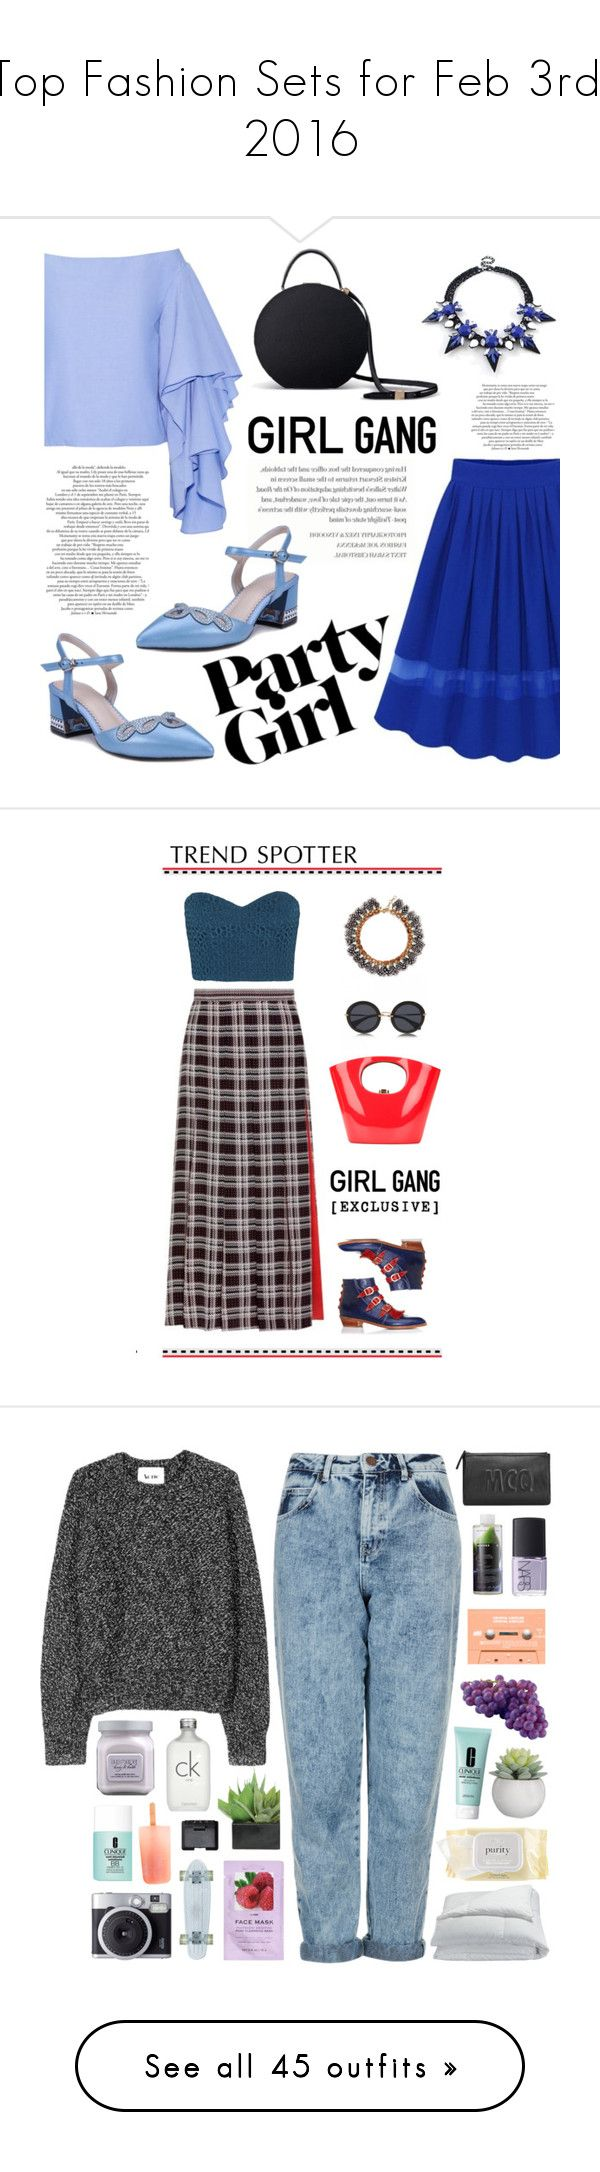 """""""Top Fashion Sets for Feb 3rd, 2016"""" by polyvore ❤ liked on Polyvore featuring Rosie Assoulin, women's clothing, women, female, woman, misses, juniors, contestentry, galentinesday and Mother of Pearl"""